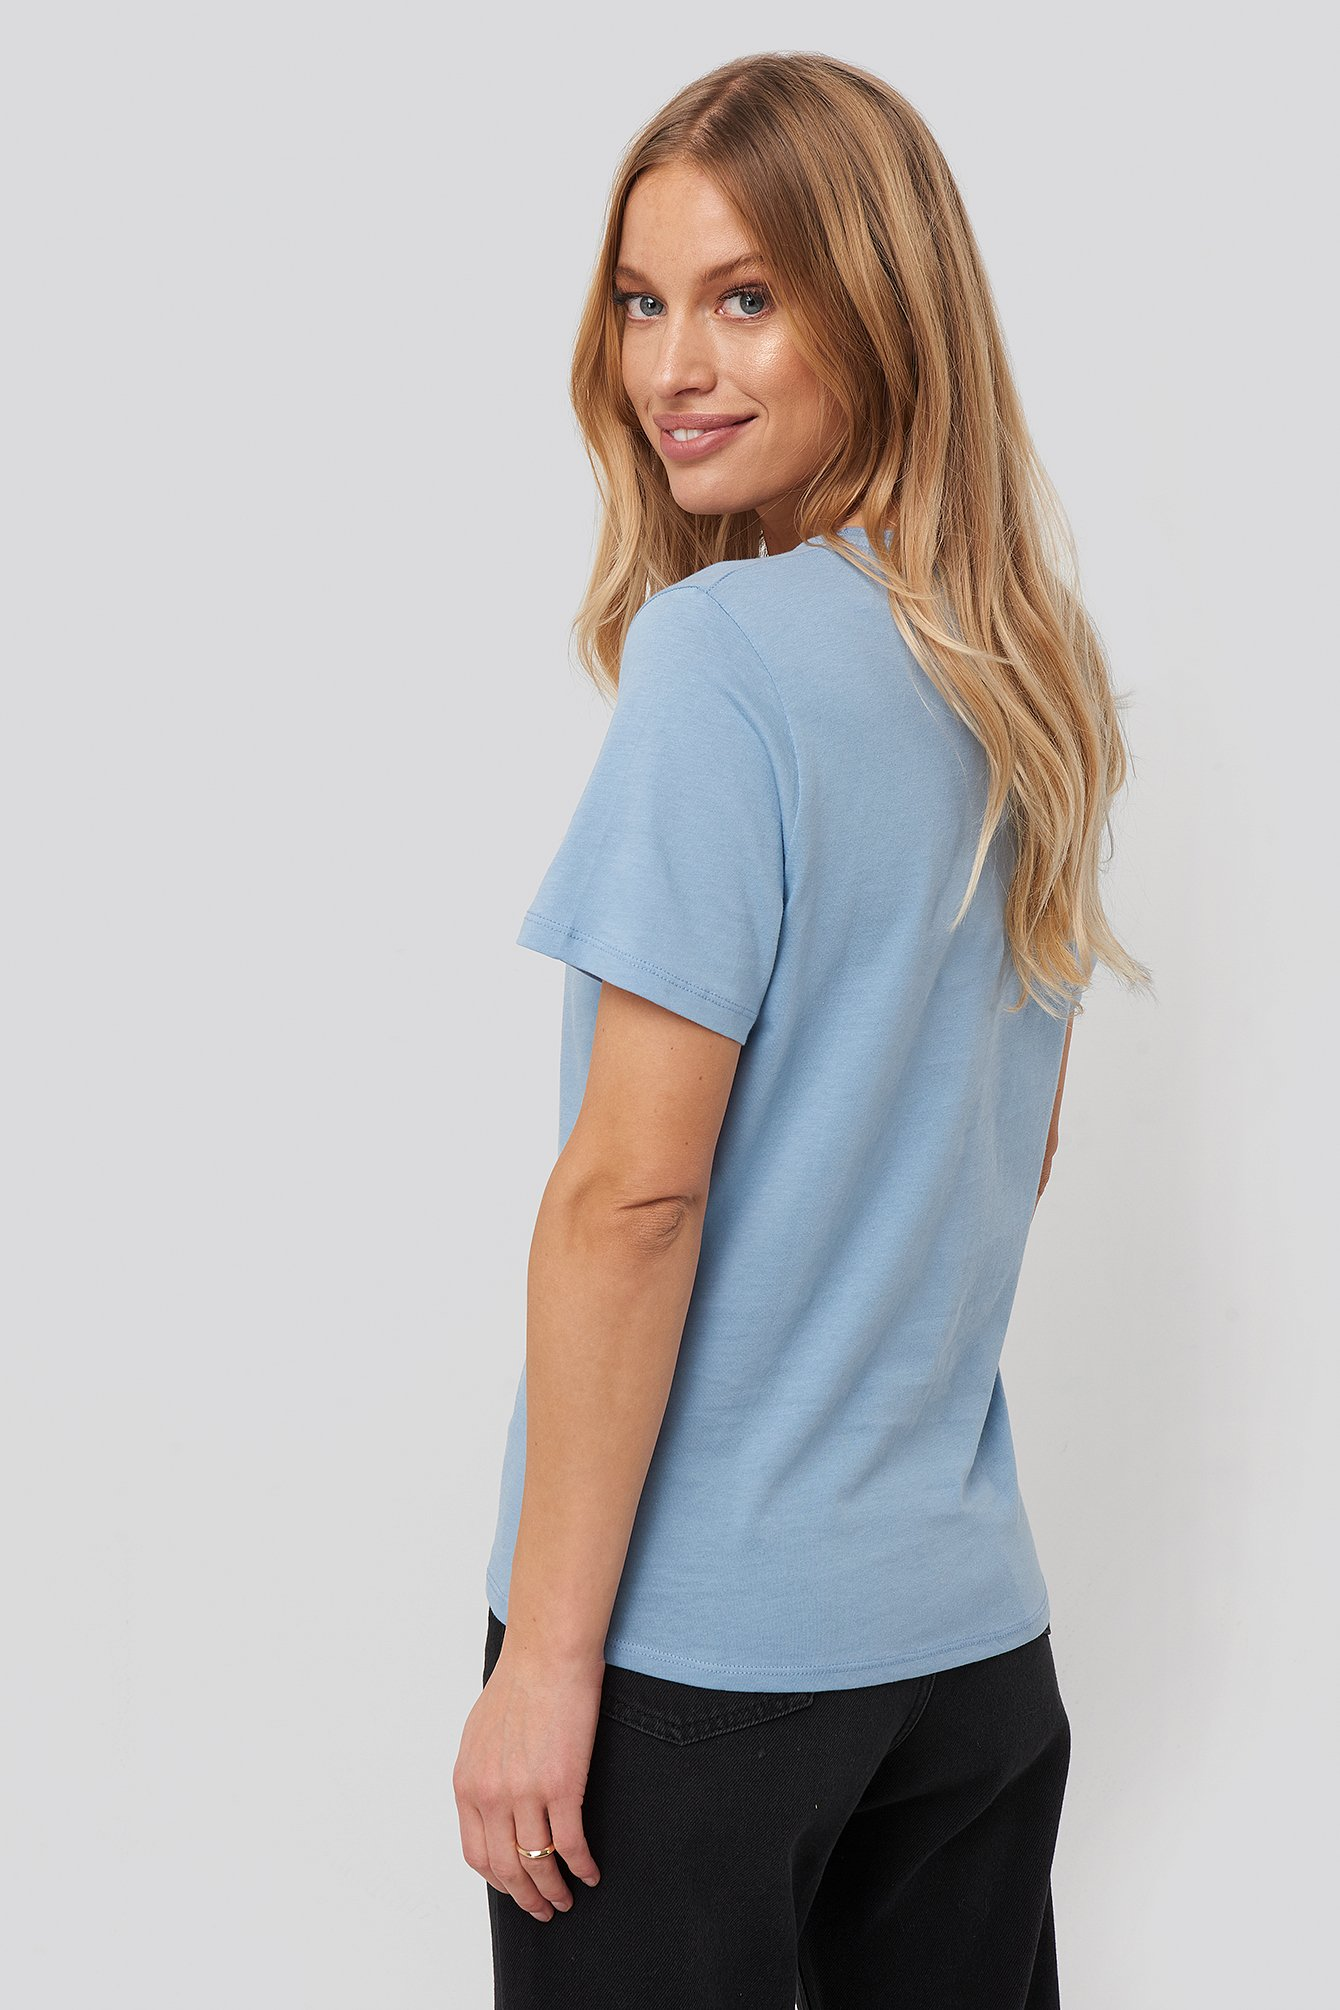 Dusty Light blue V-Neck Tee